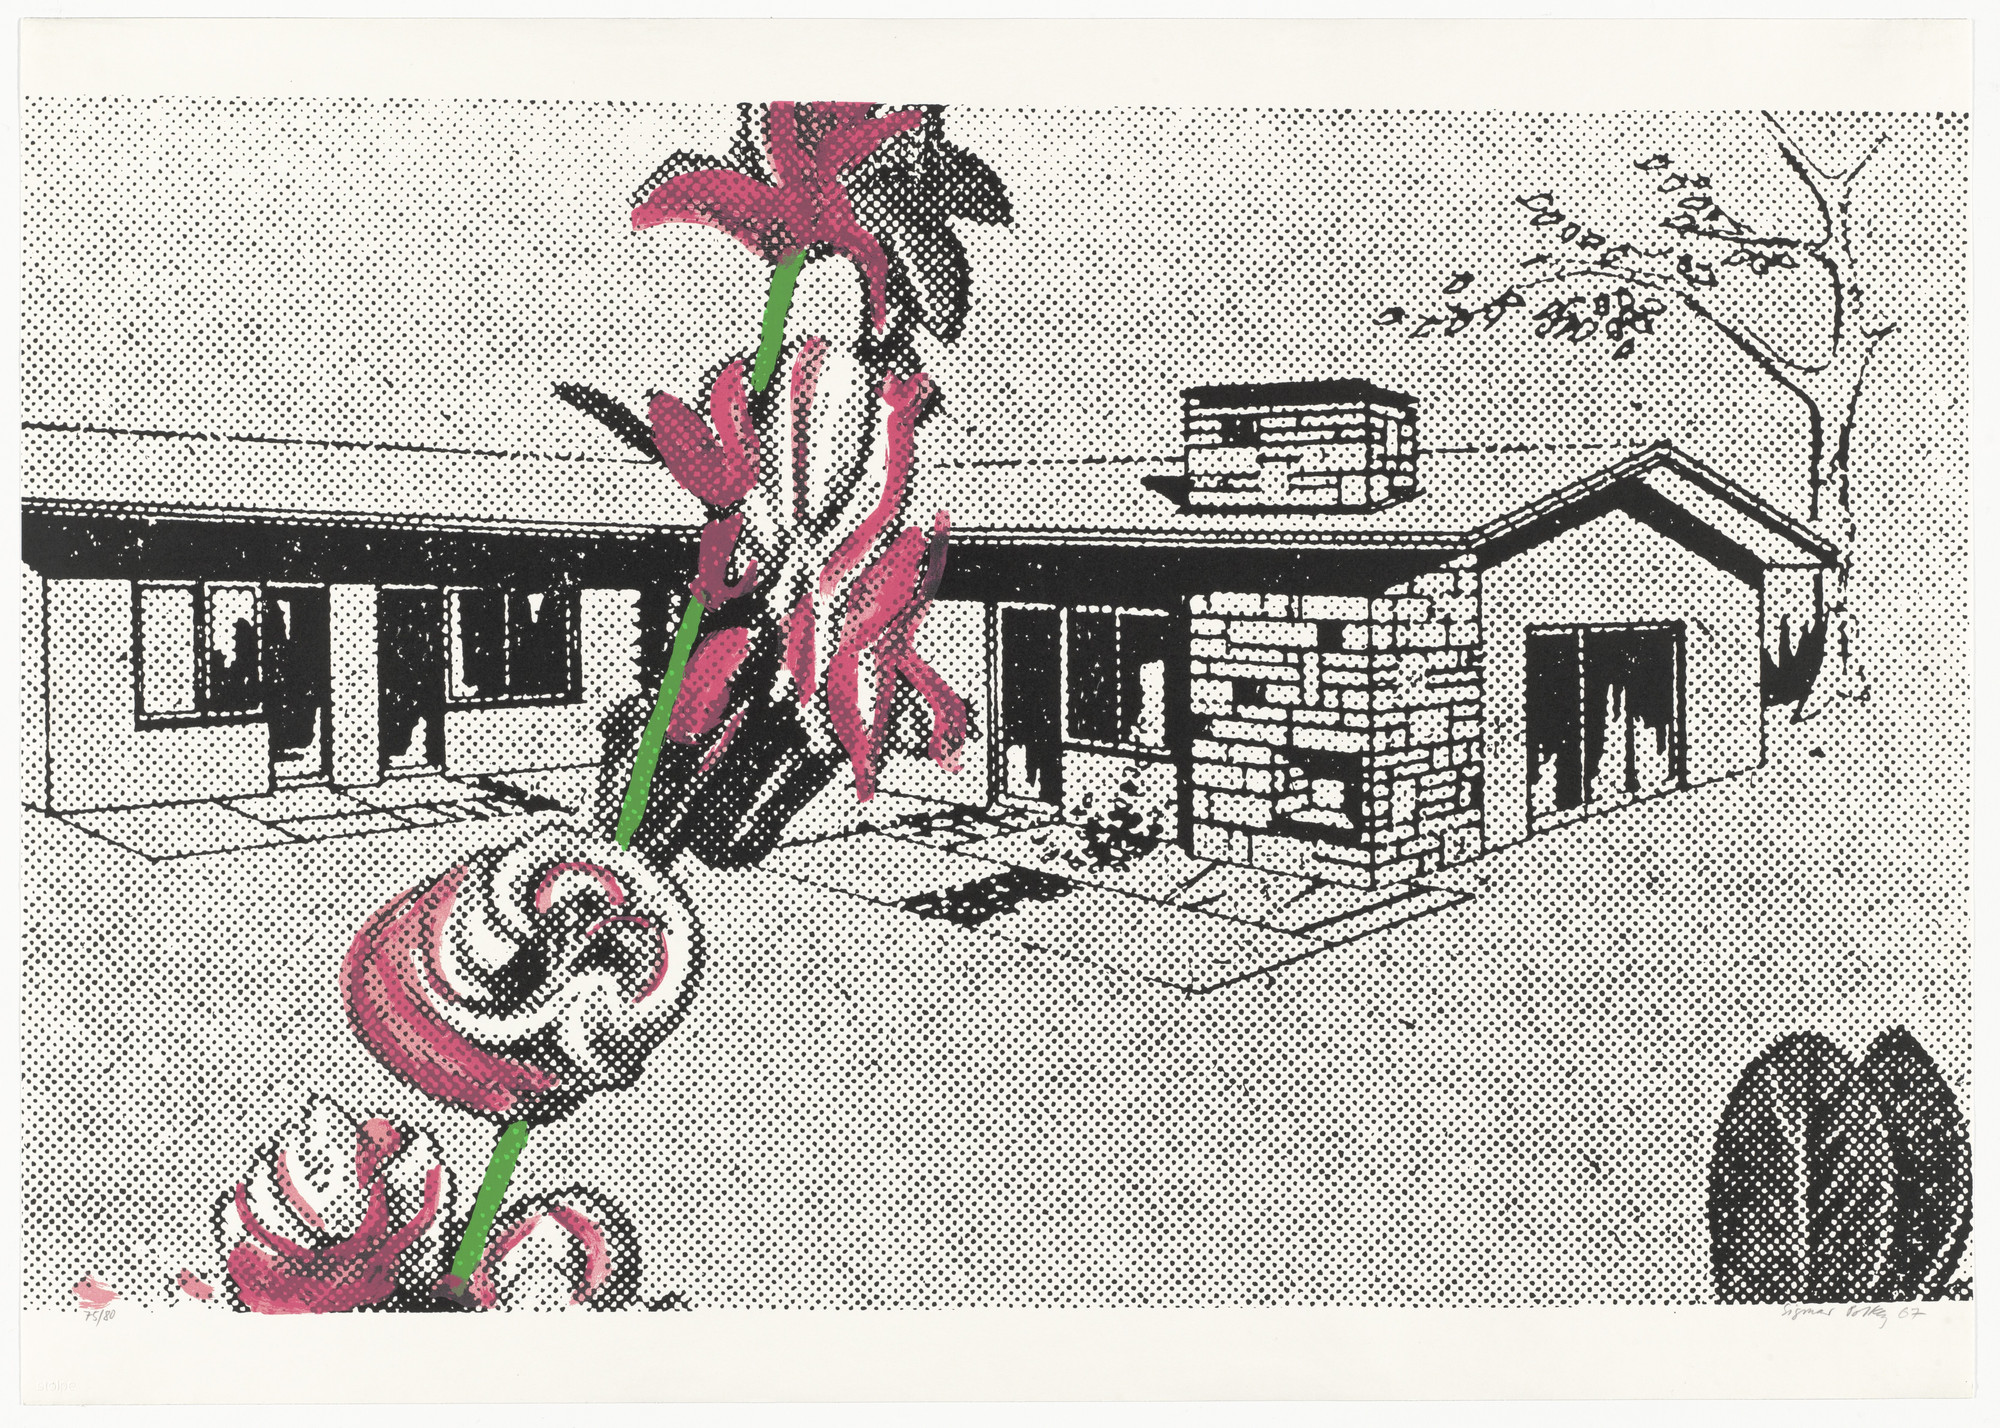 Sigmar Polke. Weekend House (Wochenendhaus) from Graphics of Capitalist Realism (Grafik des Kapitalistischen Realismus). 1967, published 1968